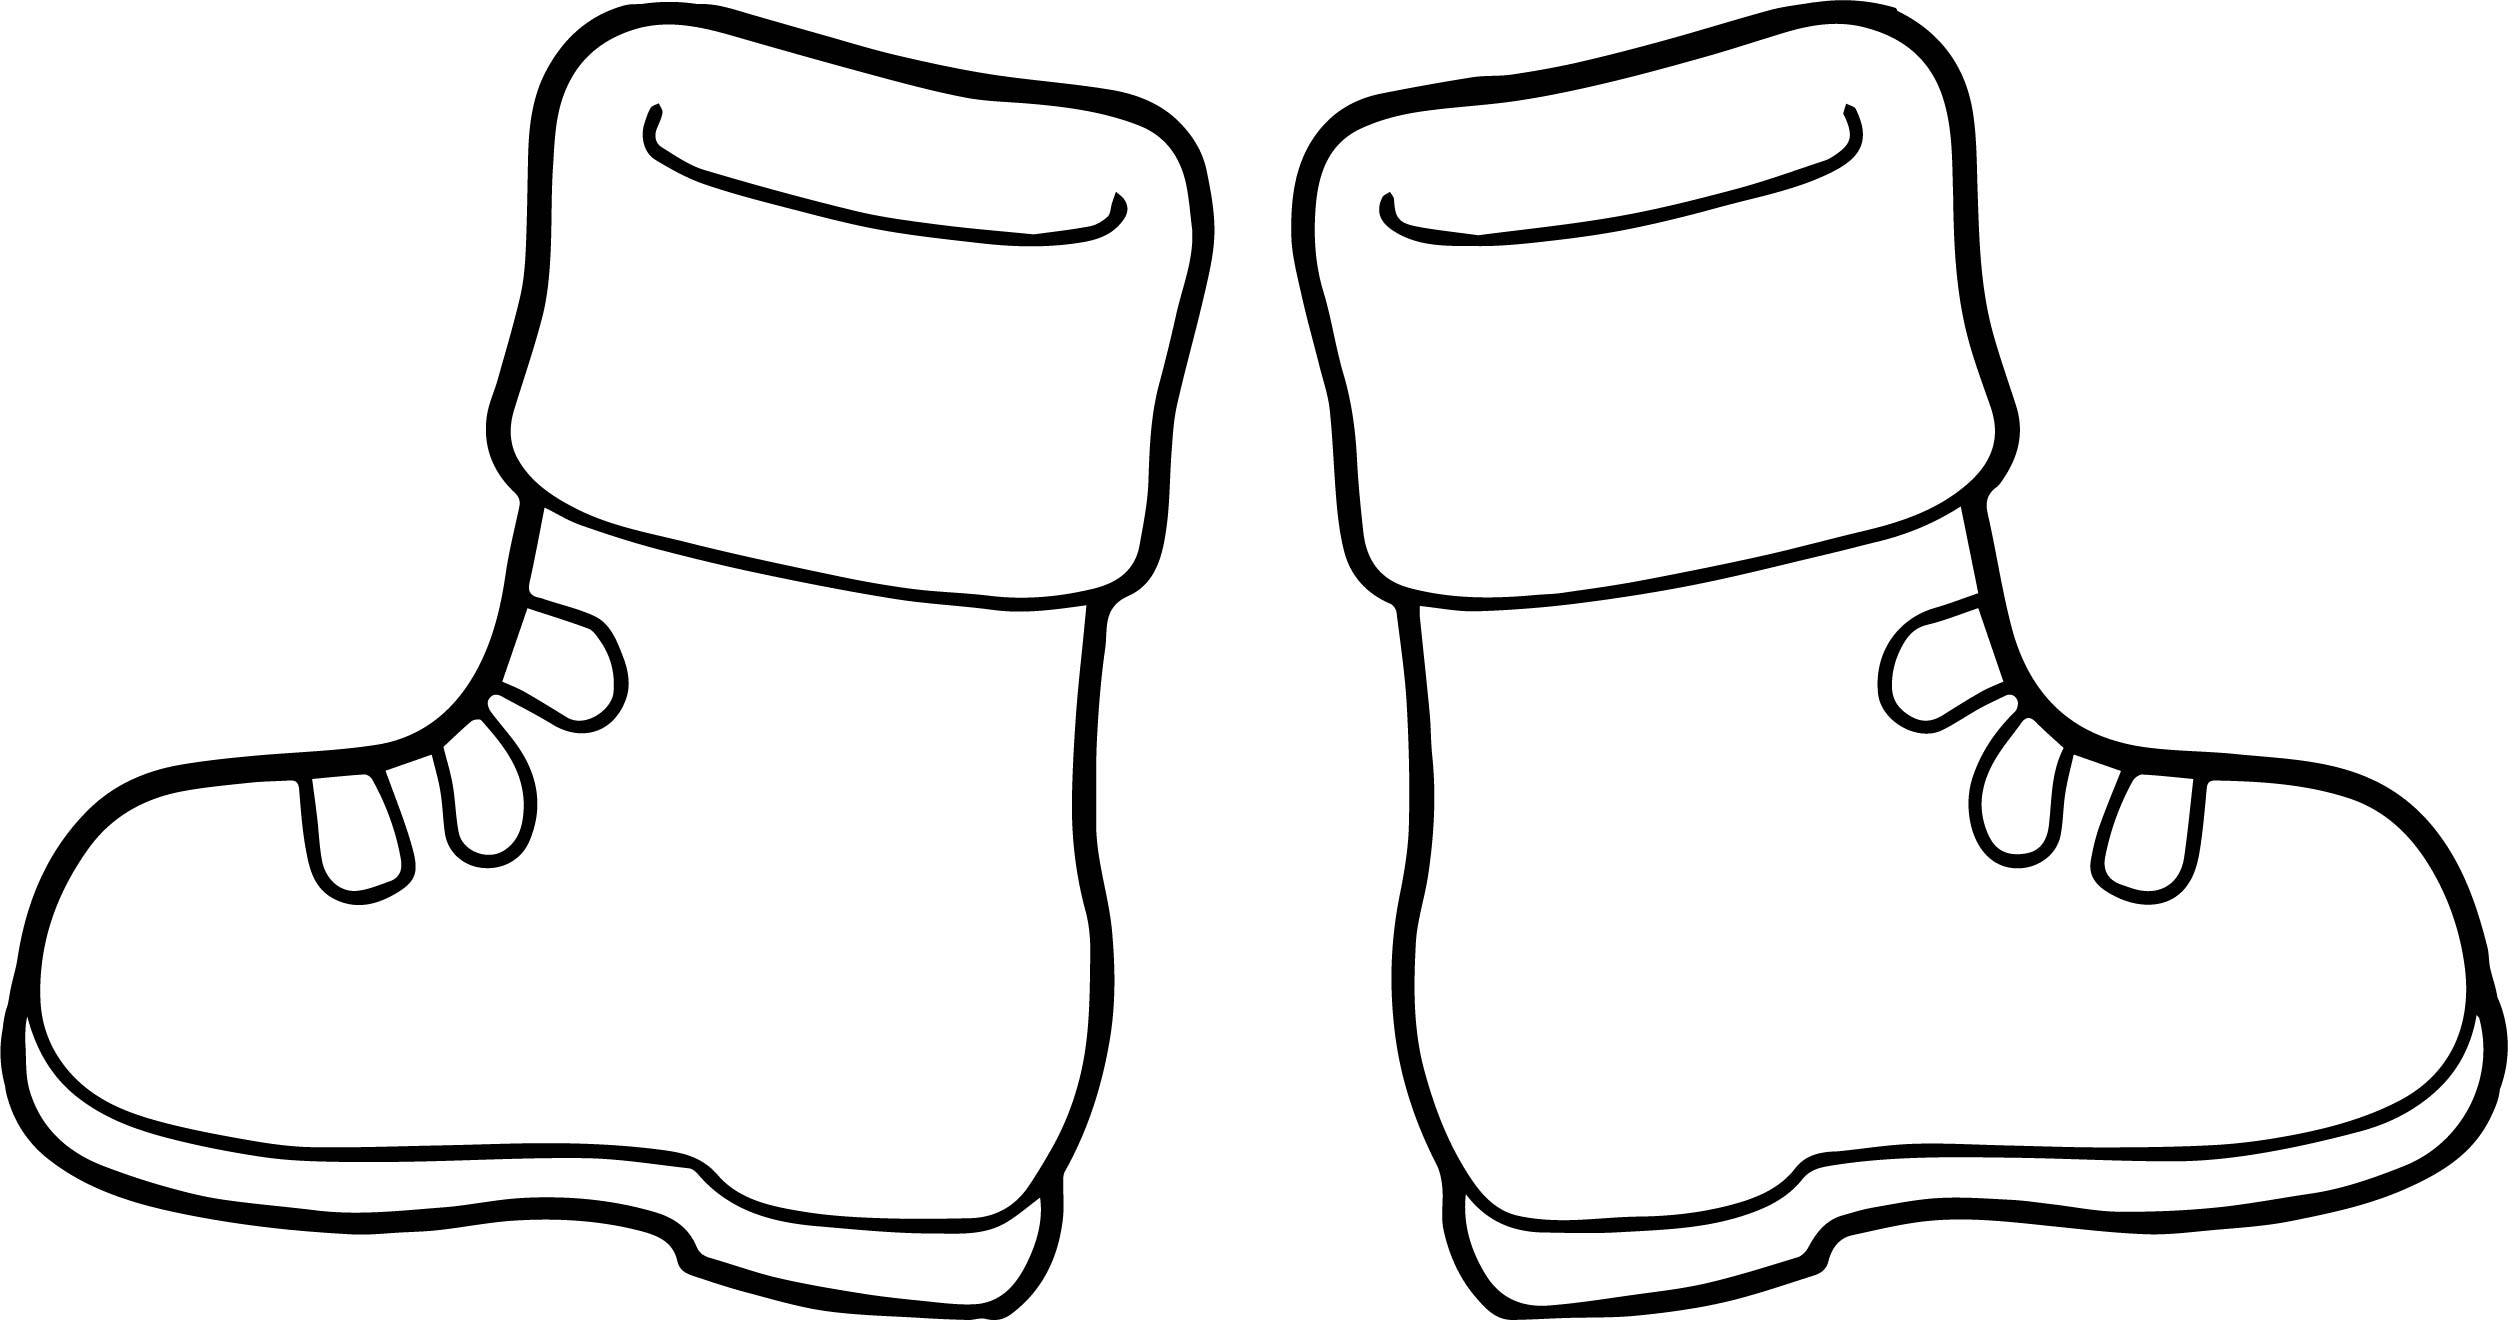 Boots Coloring Page - Costumepartyrun